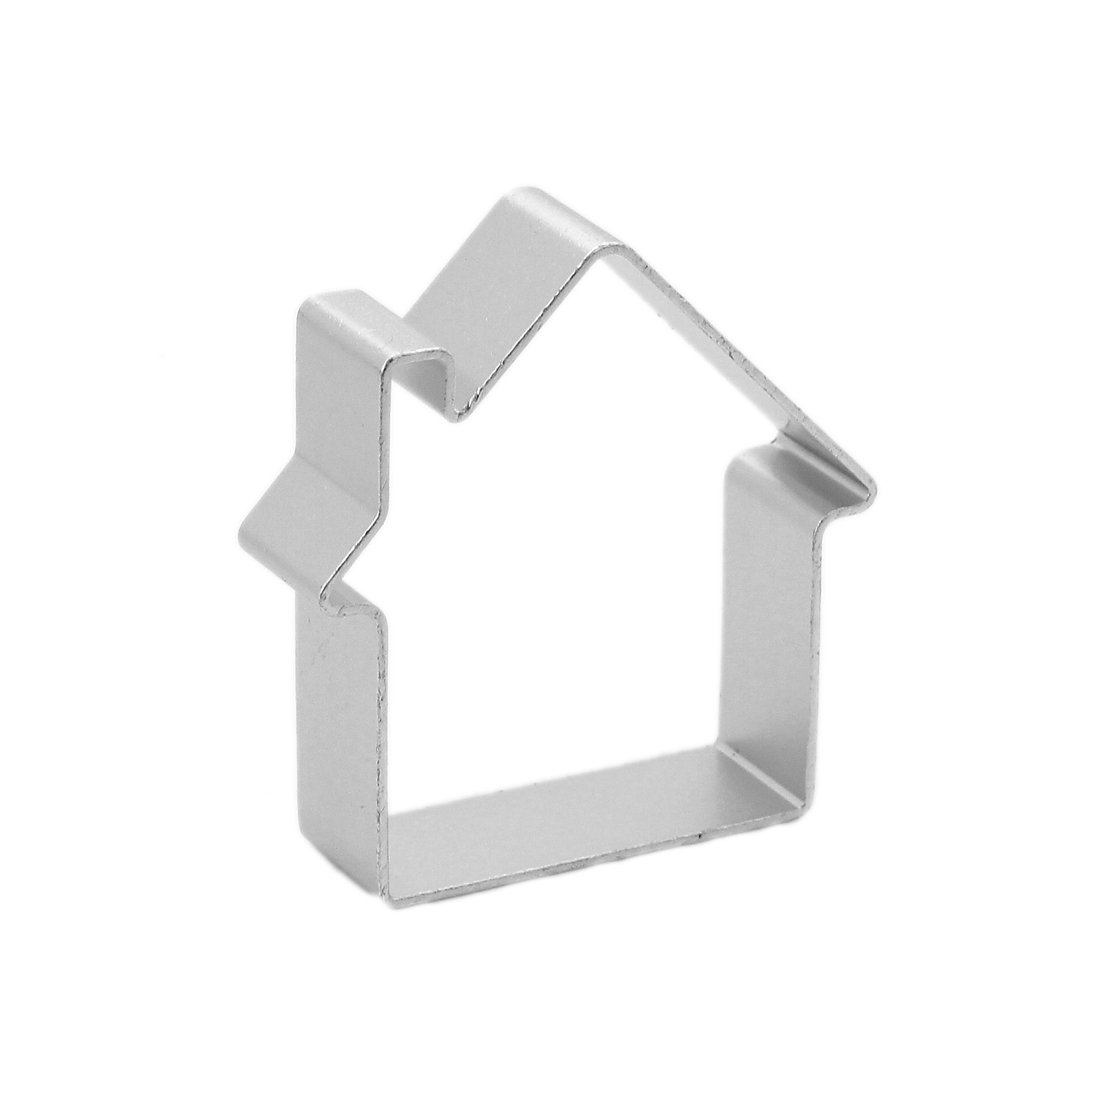 House Shaped Cake Decorating Cookies Baking Cutter Mould Tool Aluminium Alloy